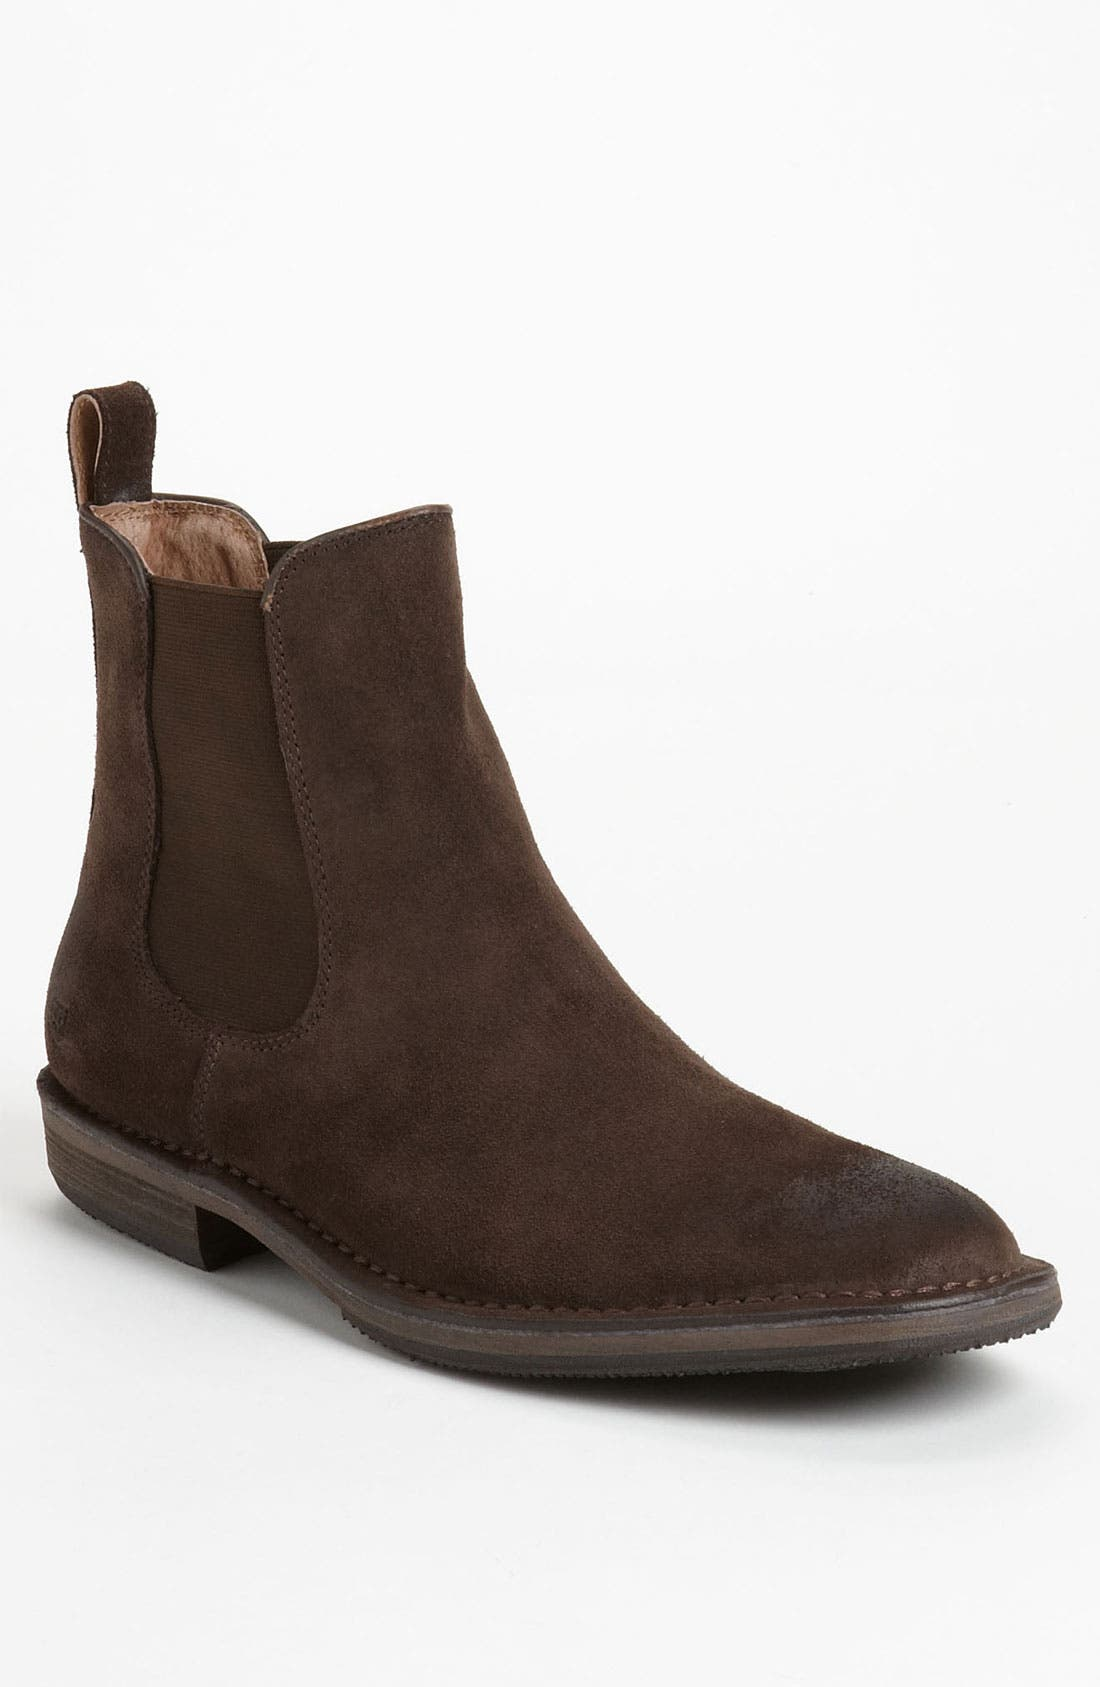 Alternate Image 1 Selected - Andrew Marc Suede Chelsea Boot